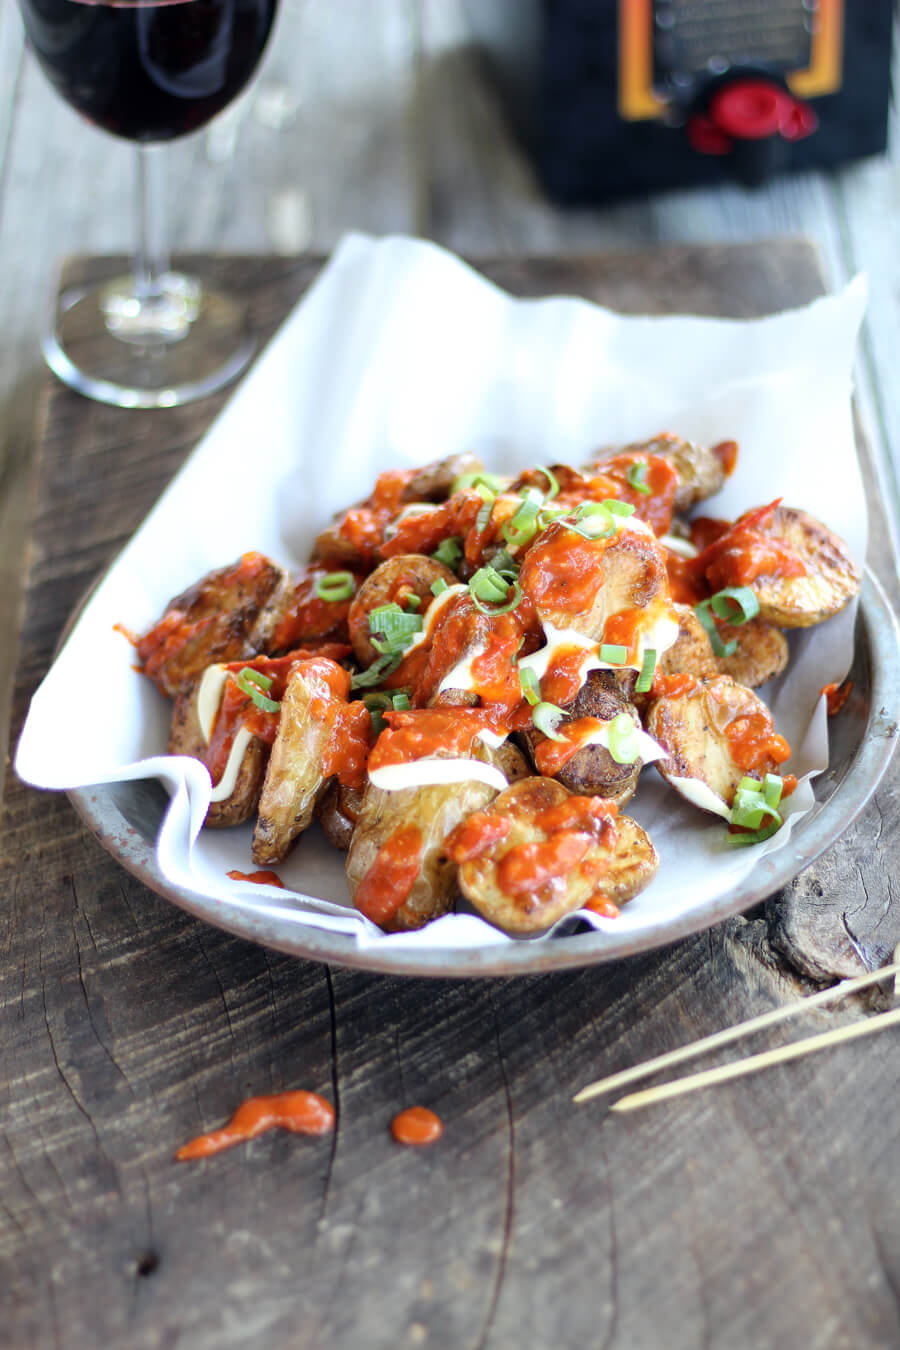 Patatas Bravas is an addictive appetizer that starts with crisp oven-roasted potatoes and is topped with a to-die-for homemade garlic tomato sauce. Every bite is a mouthful of nom nom flavor, and you'll be begging for more.